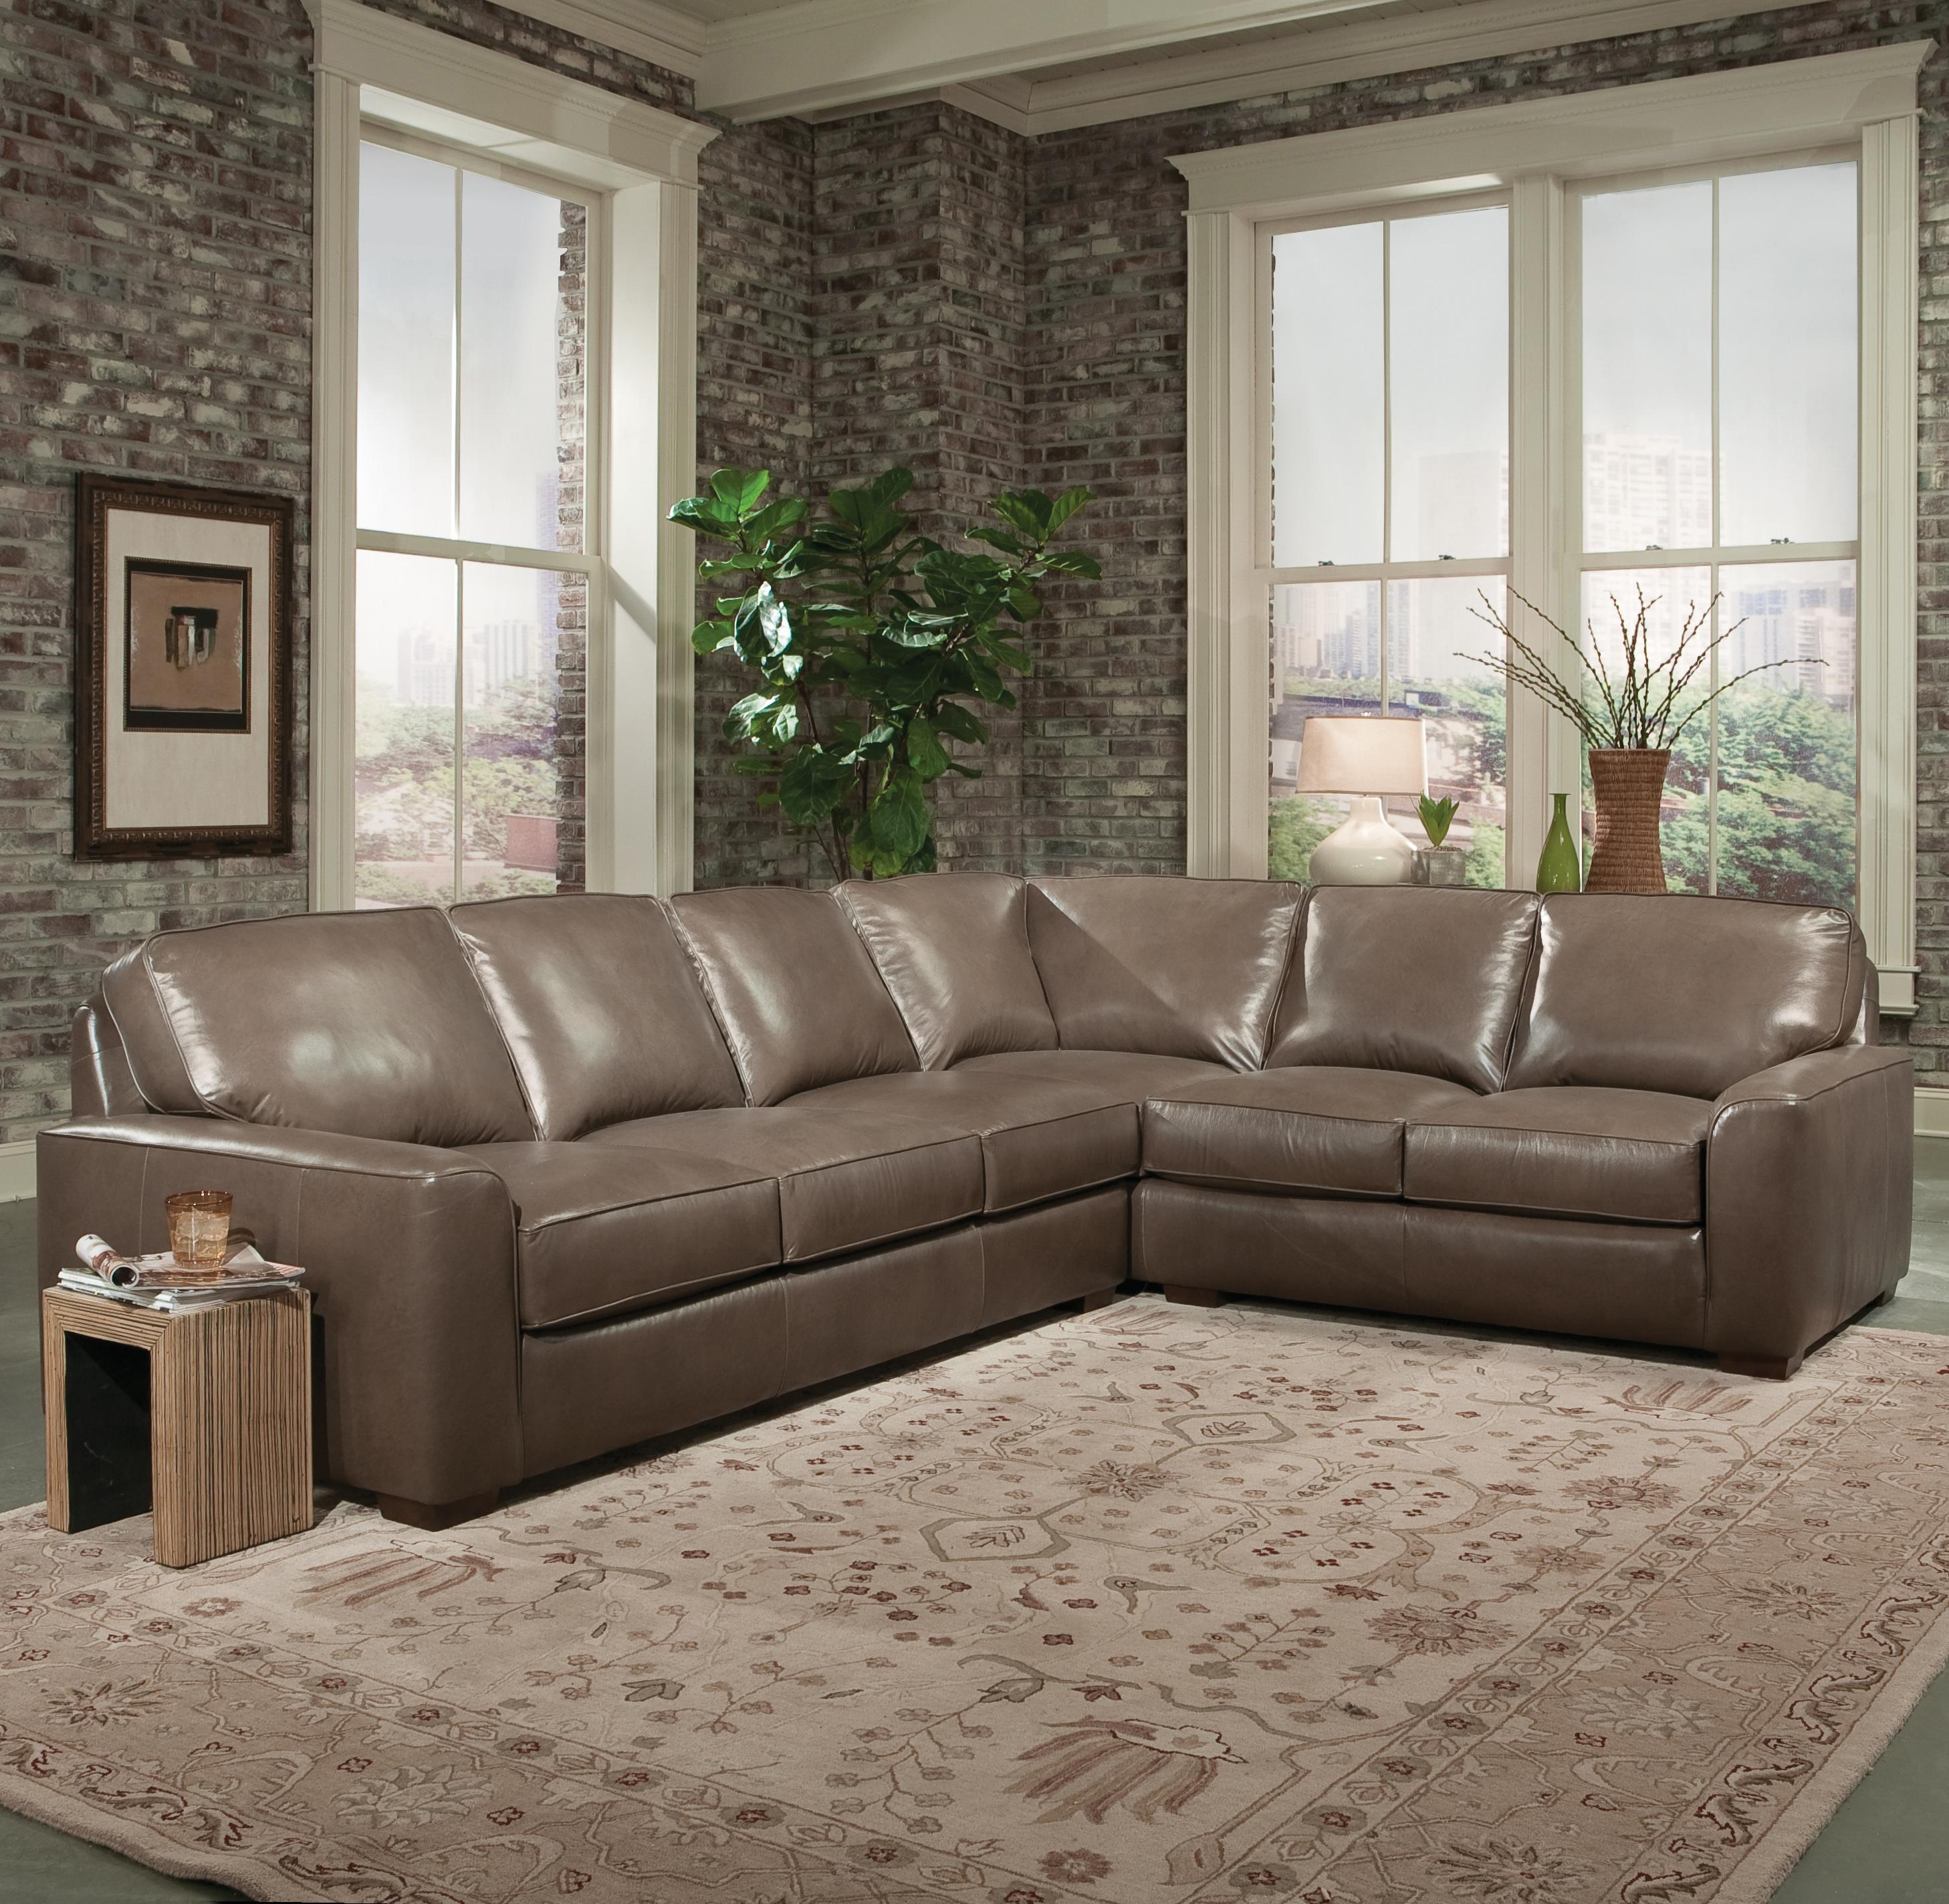 Smith Brothers Build Your Own (8000 Series) Large Corner Sectional Sofa |  Wayside Furniture | Sectional Sofas